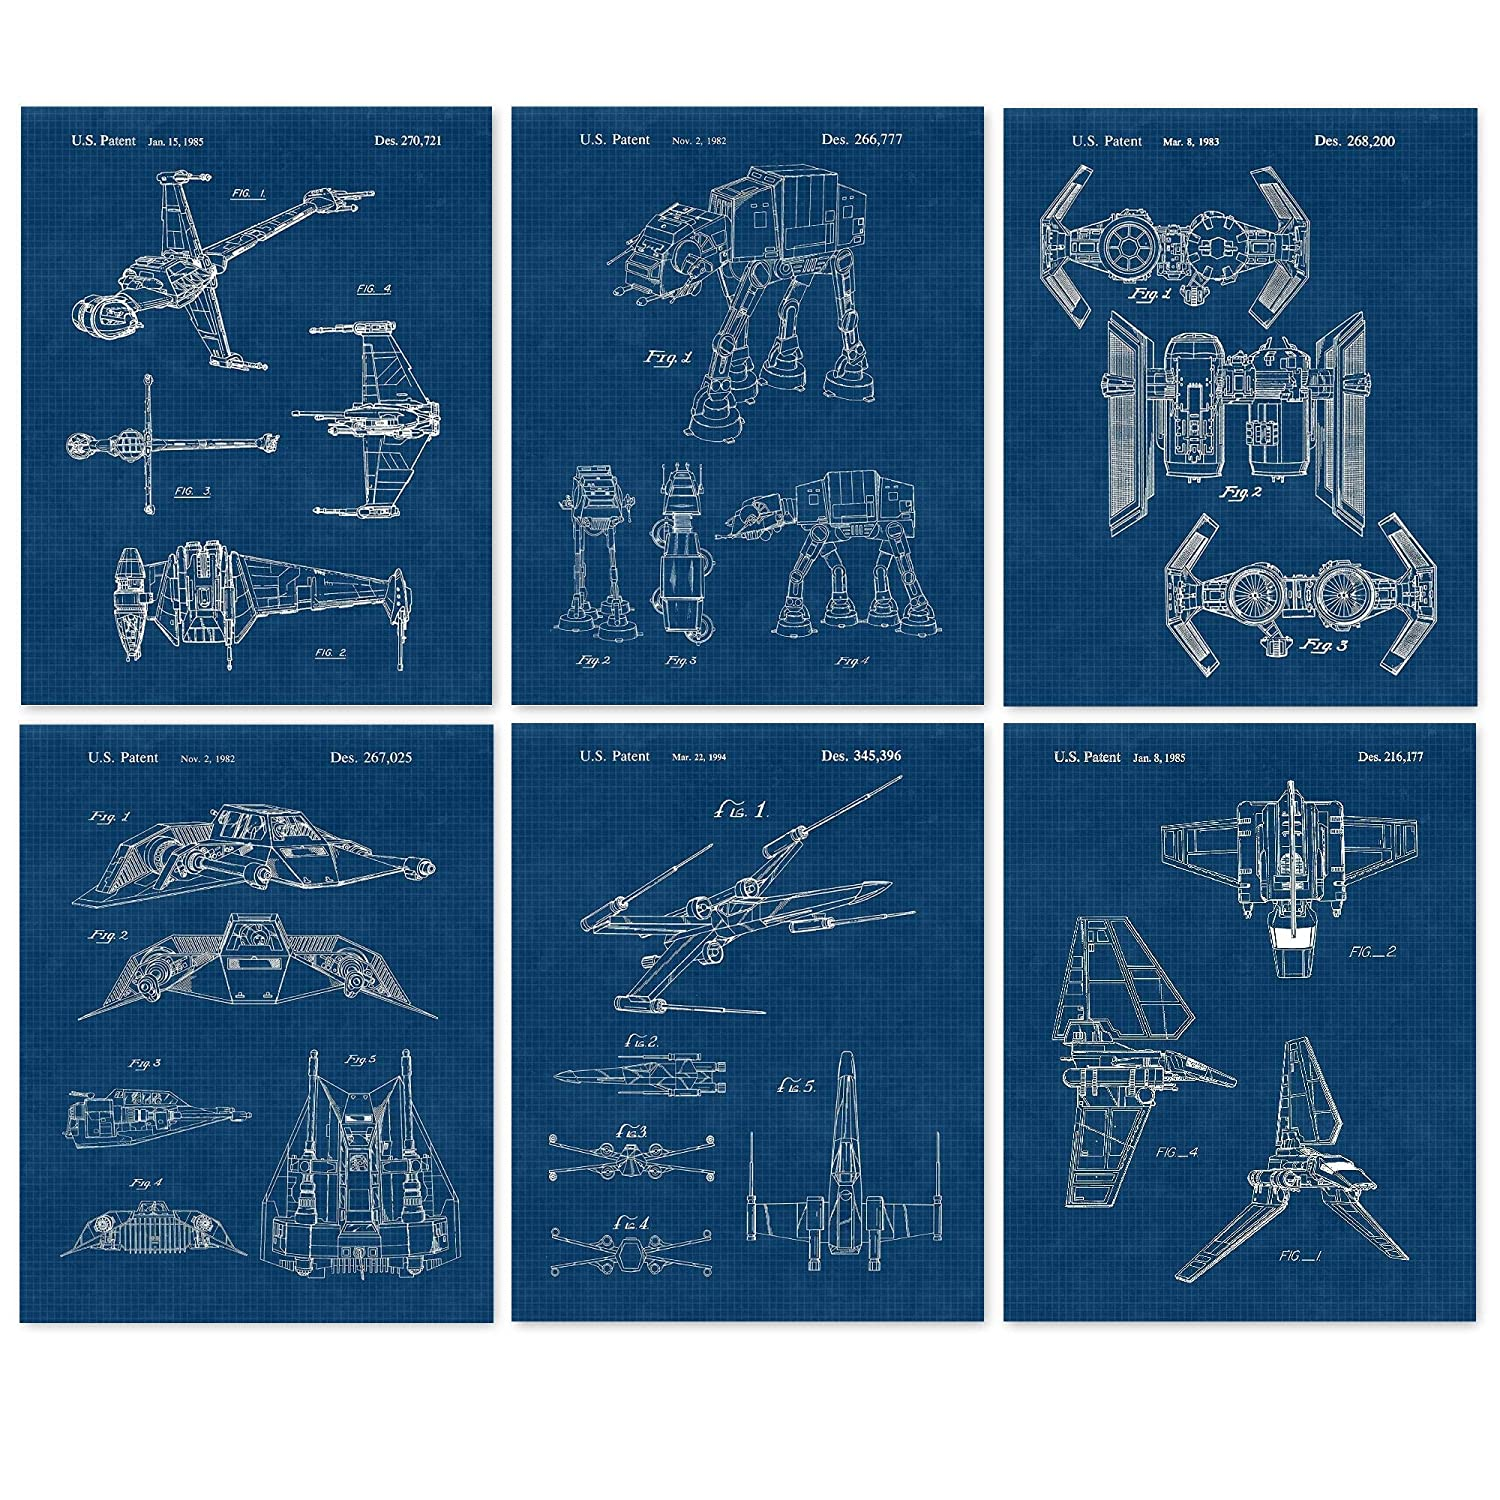 Vintage Star Wars Vessels Vehicles Patent Poster Prints, Set of 6 (8x10) Unframed Photos, Wall Art Decor Gifts Under 25 for Home, Office, Man Cave, College Student, Teacher, Comic-Con & Movies Fan